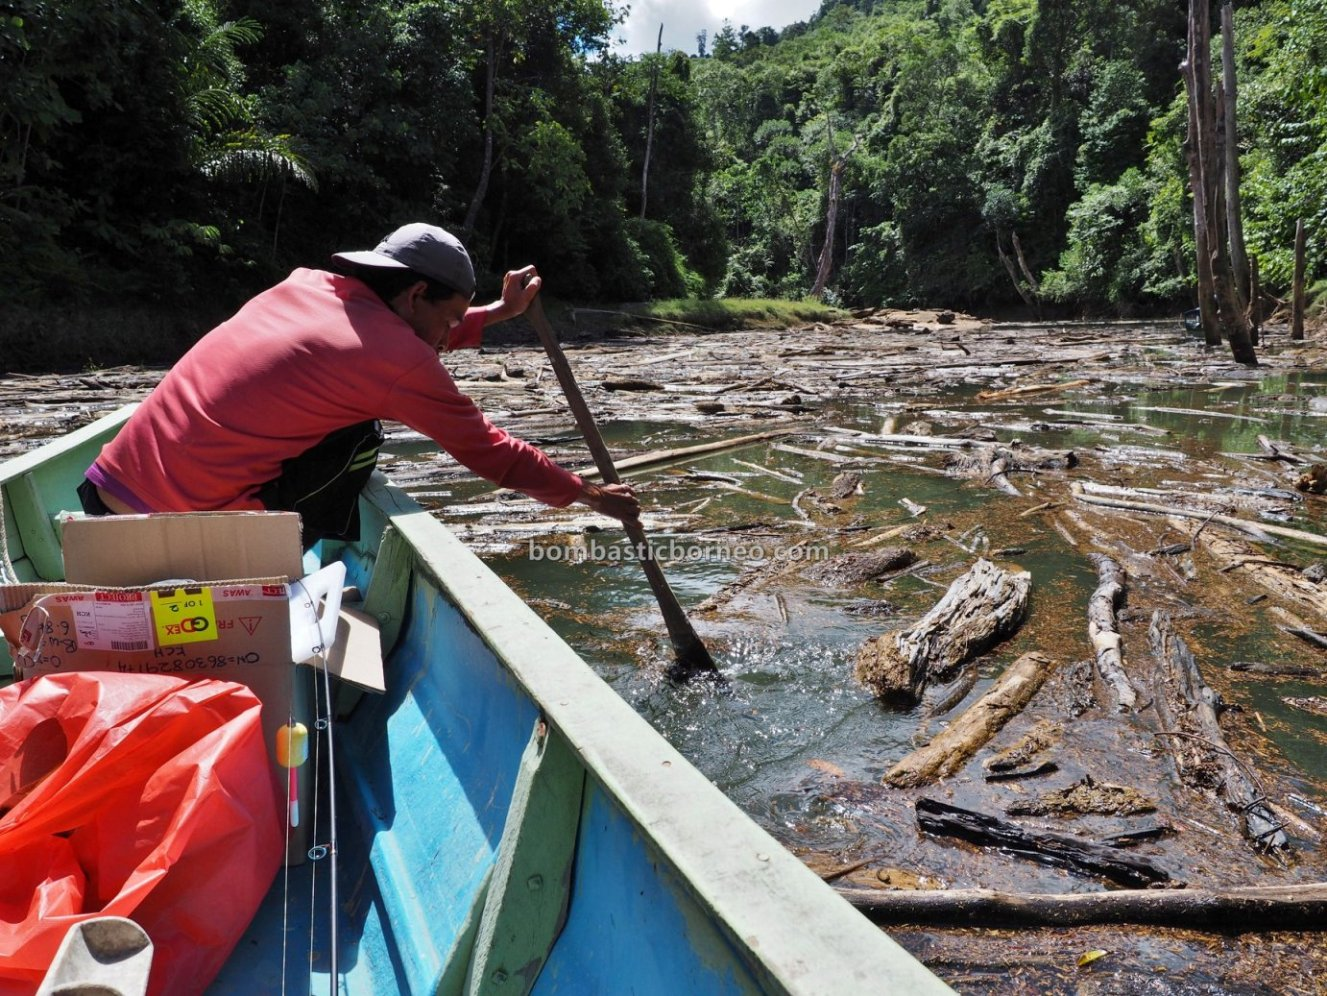 empangan, destination, Ikan semah, traditional, fishing trip, memancing, Belaga, Kapit, Malaysia, Tourism, tourist attraction, travel guide, Borneo, 砂拉越峇贡水坝, 布拉甲加帛